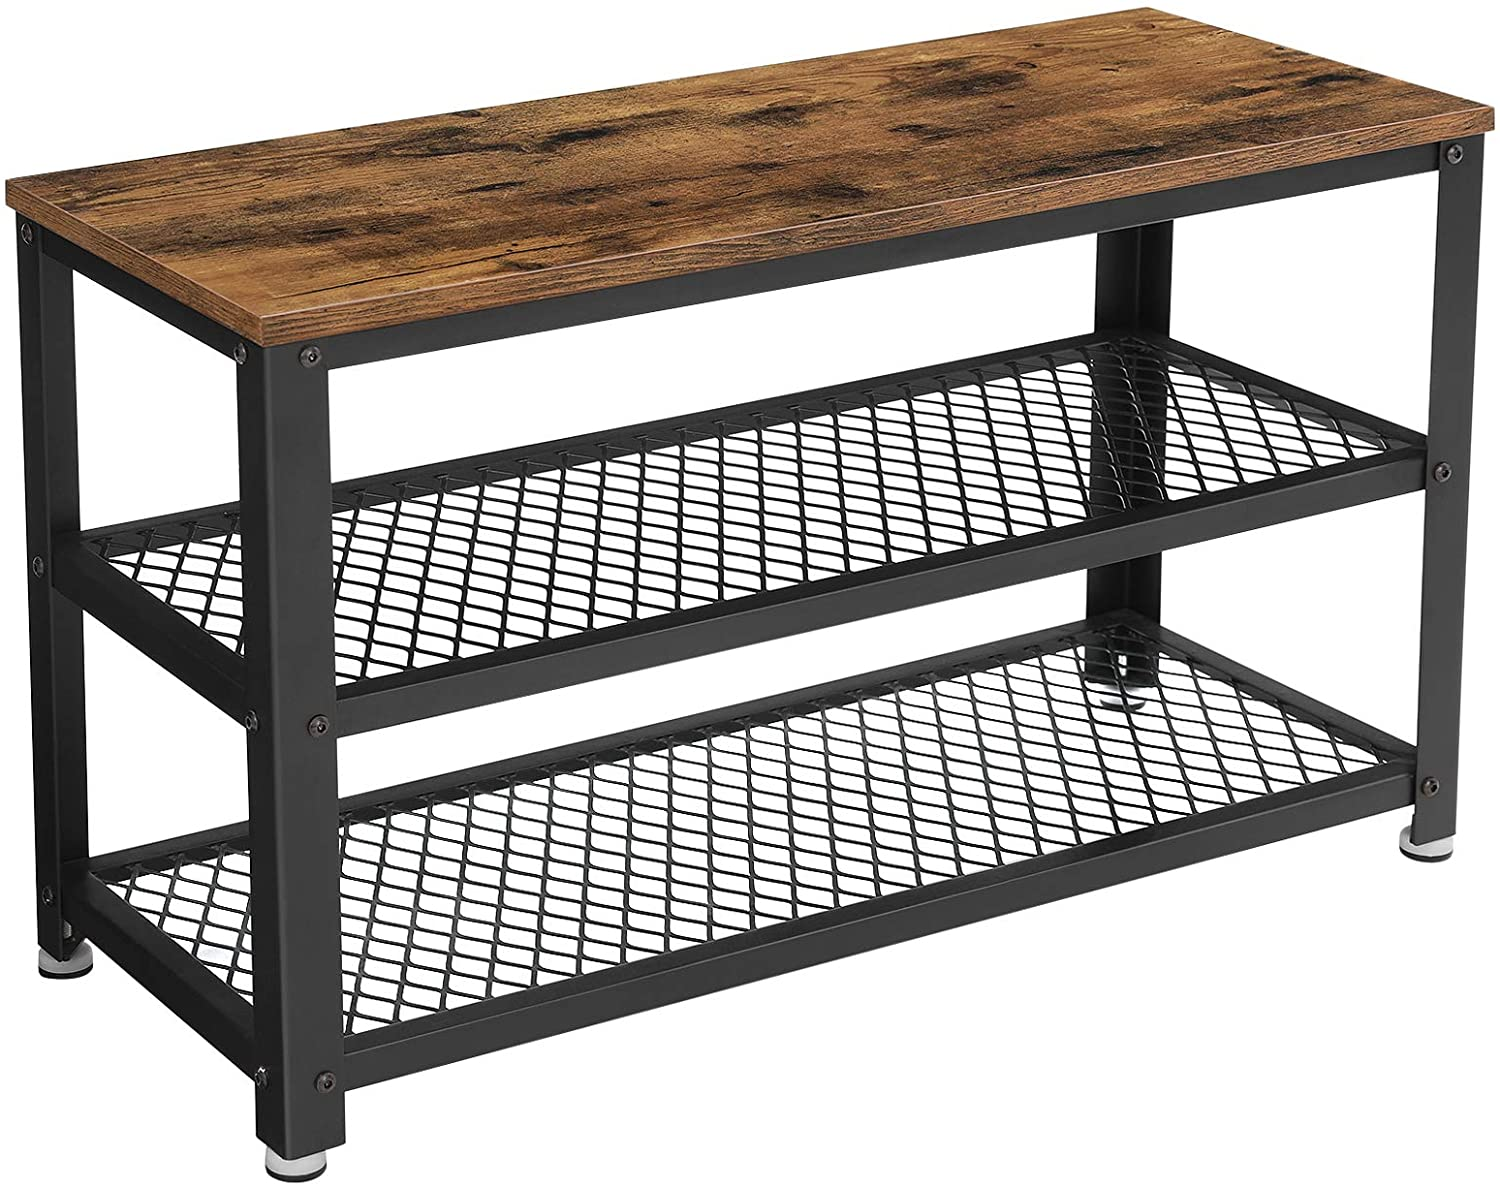 Enjoy fast, free nationwide shipping!  Family owned and operated, HawkinsWoodshop.com is your one stop shop for affordable furniture.  Shop HawkinsWoodshop.com for solid wood & metal modern, traditional, contemporary, industrial, custom, rustic, and farmhouse furniture including our Industrial Shoe Bench 3-Tier Entryway Organizer.